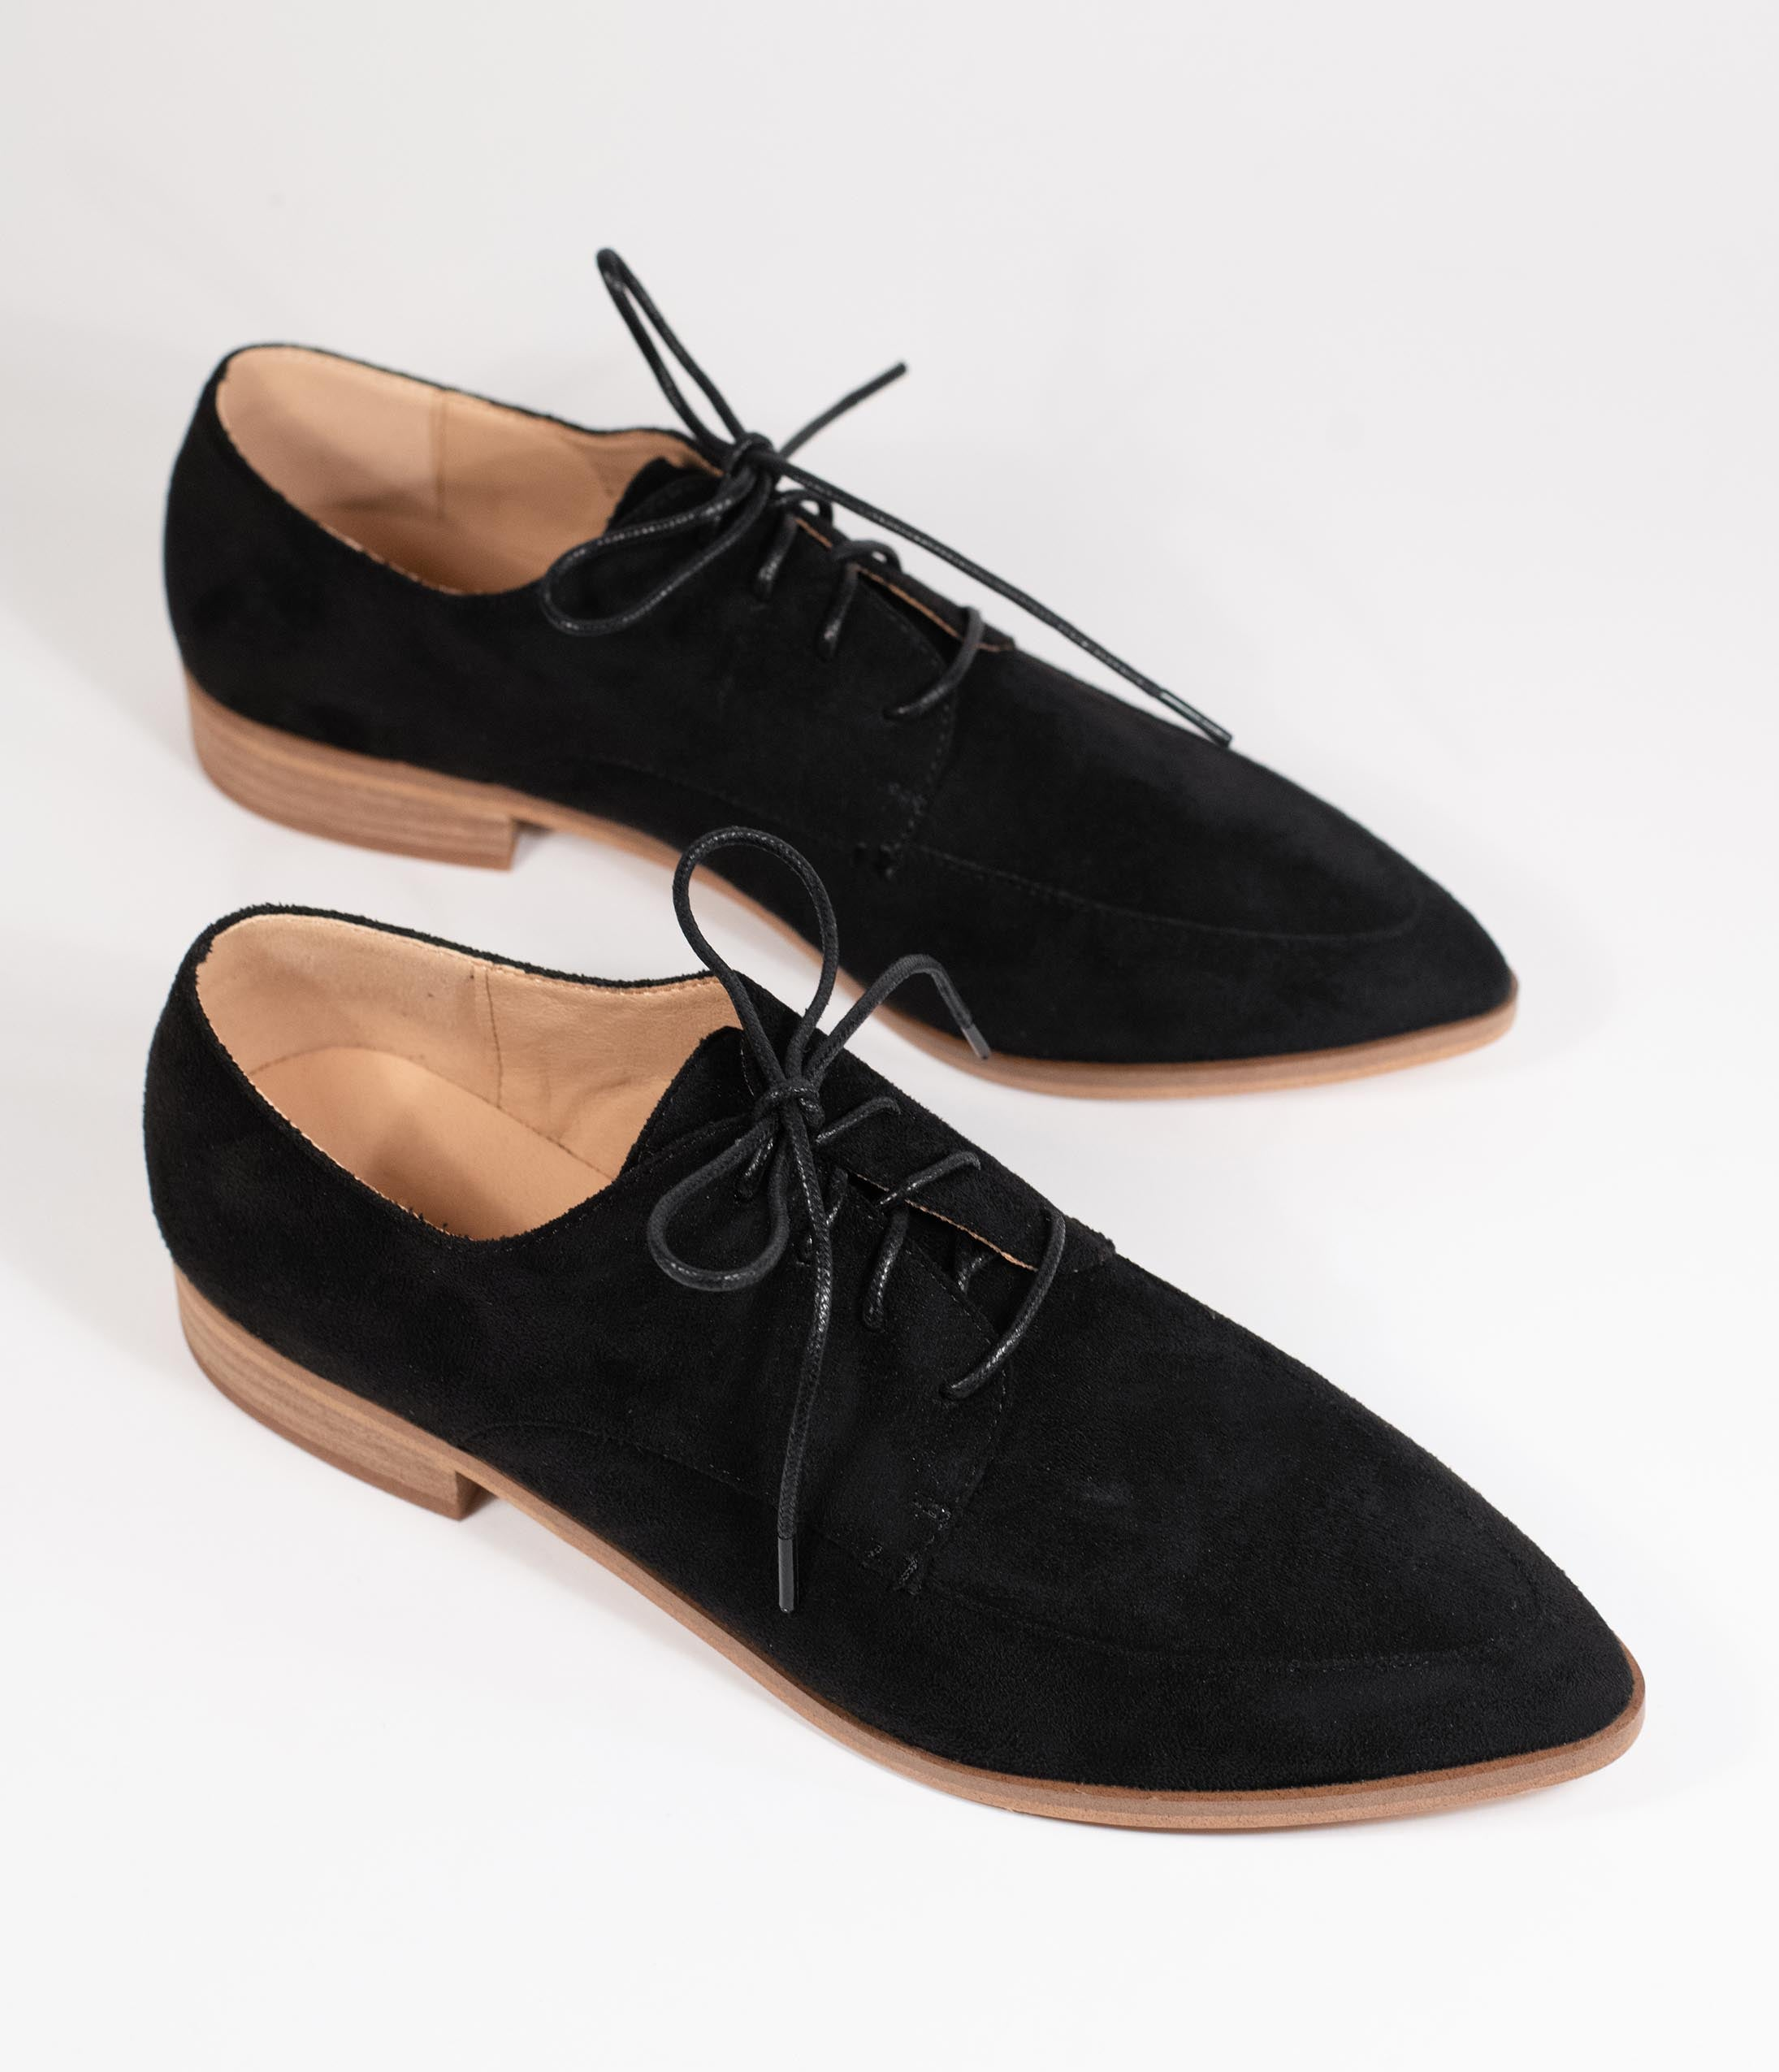 1980s Clothing, Fashion | 80s Style Clothes Black Suede Pointed Toe Oxford Flats $48.00 AT vintagedancer.com